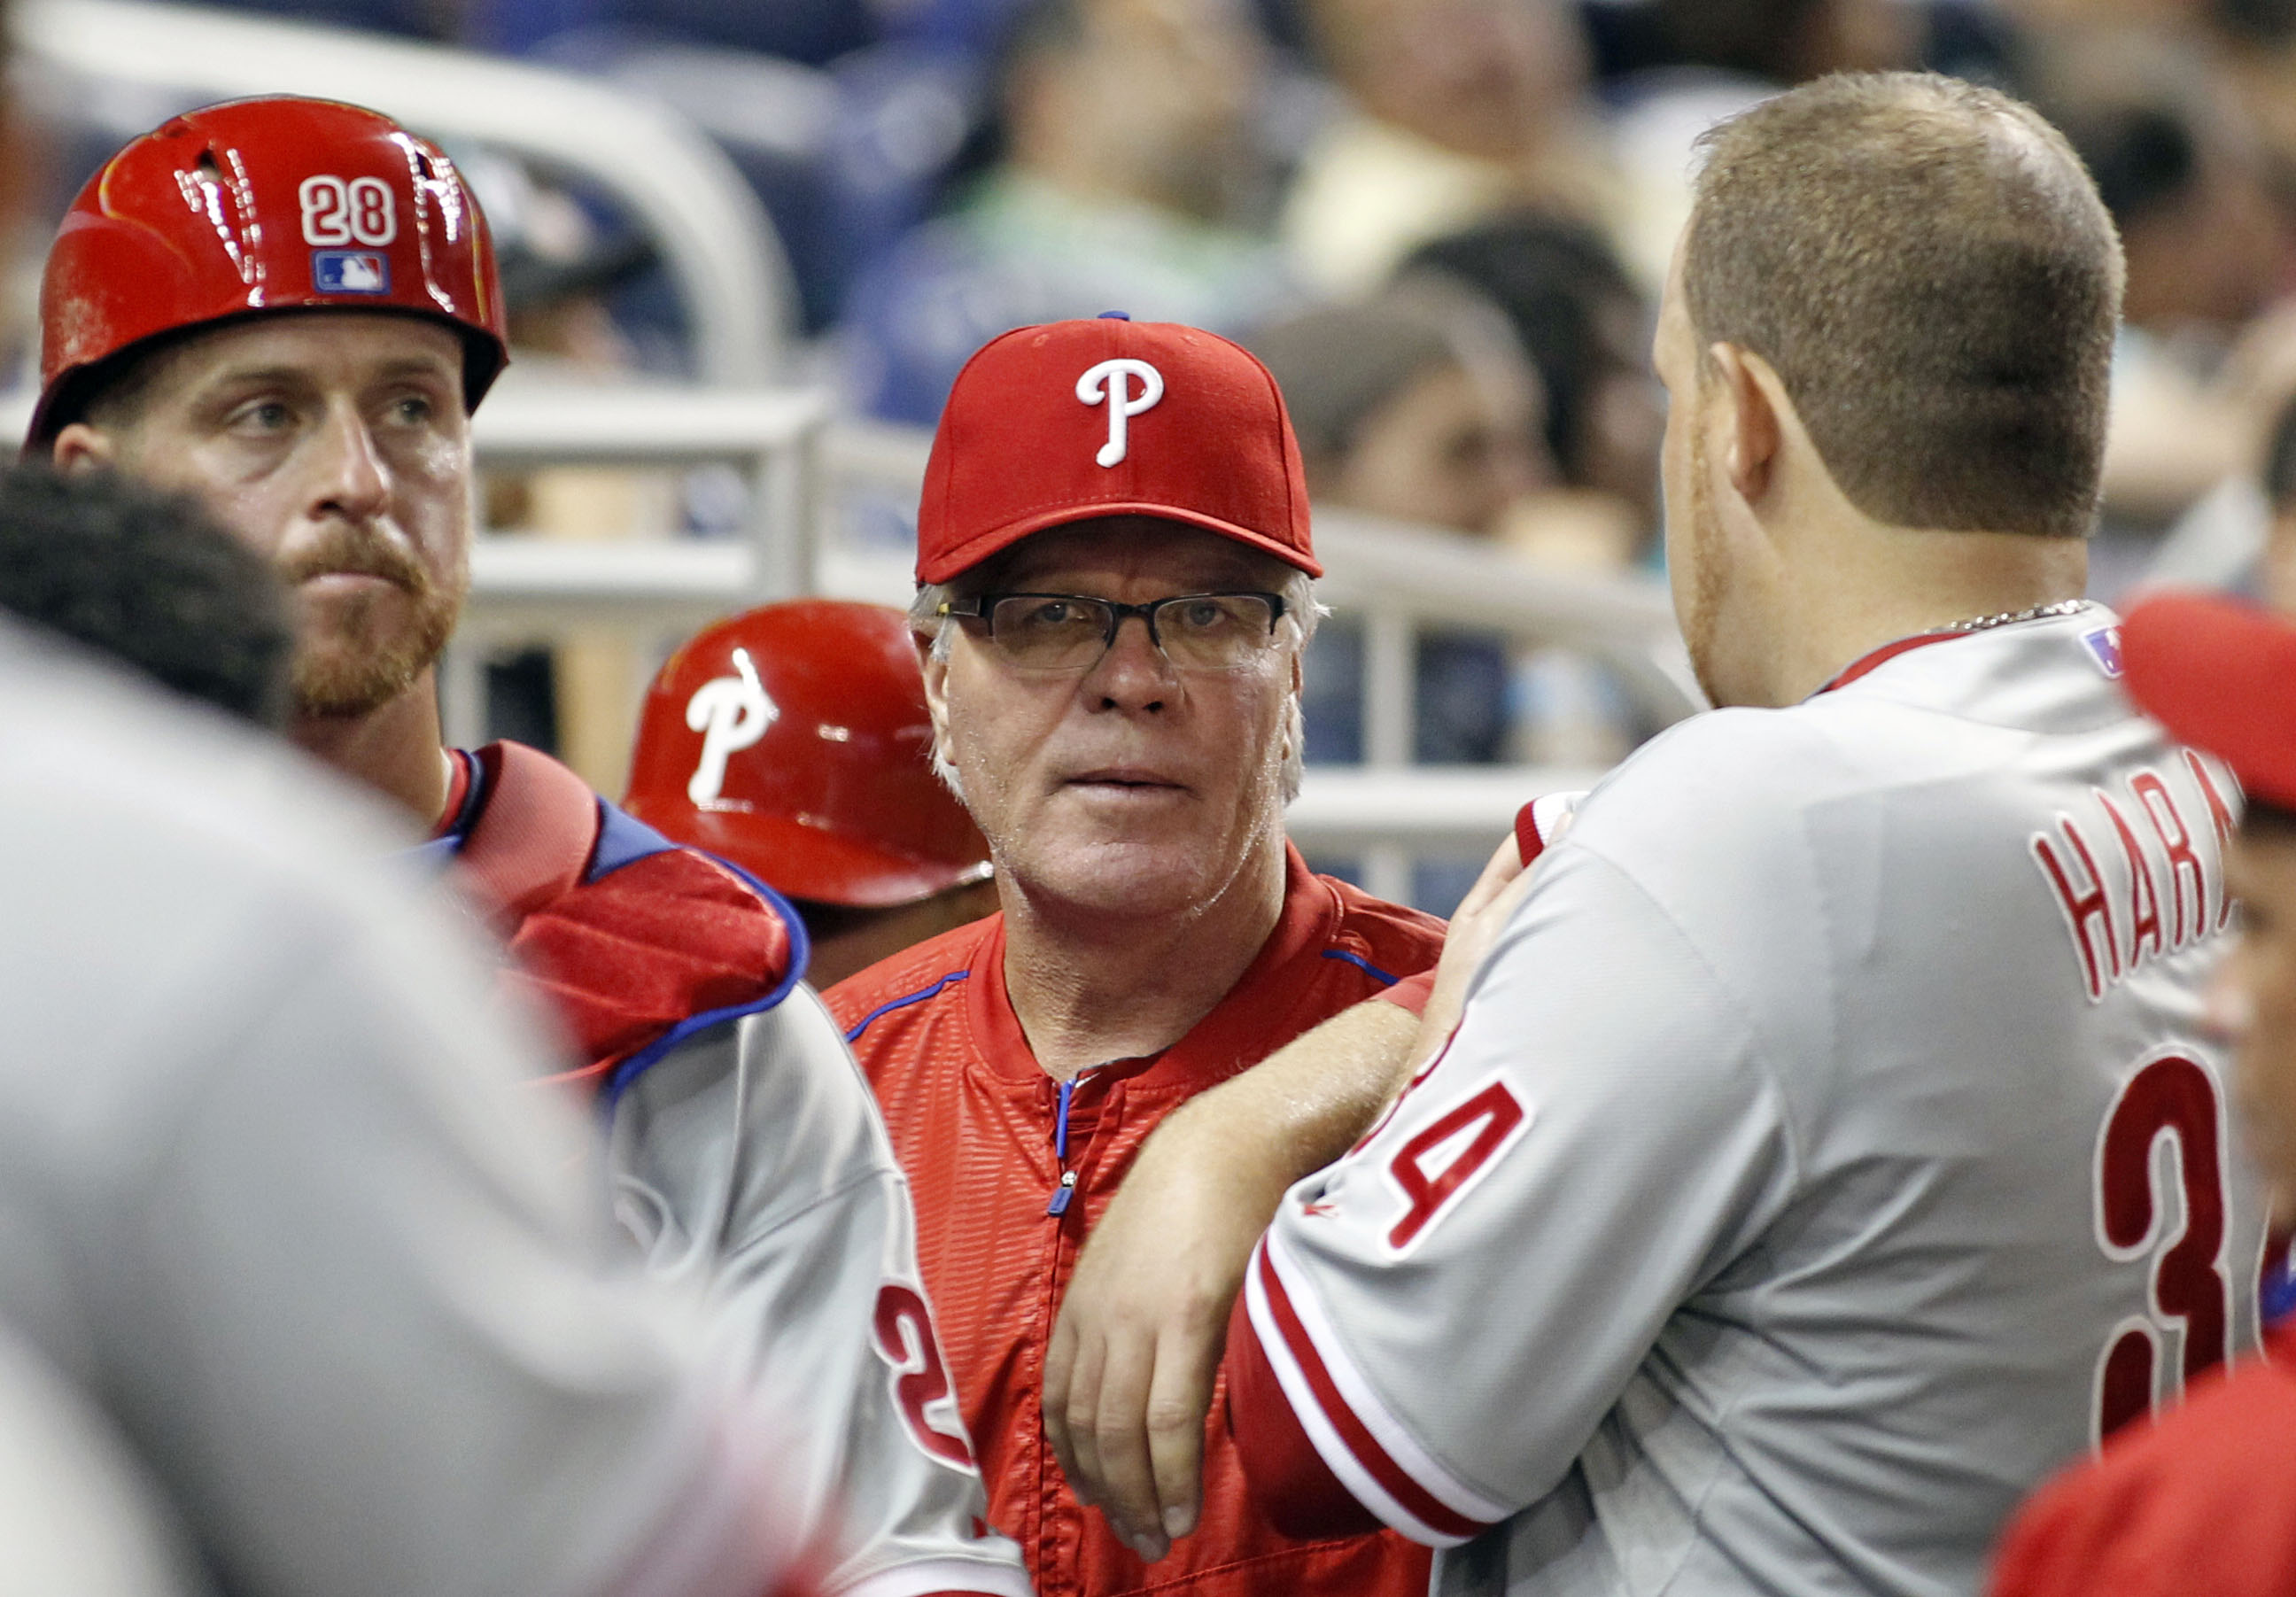 Philadelphia Phillies manager Pete Mackanin, center, speaks with starting pitcher Aaron Harang, right, and catcher Erik Kratz (28) in the third inning of play against the Miami Marlins during a baseball game in Miami, Tuesday, Sept. 22, 2015. (AP Photo/Jo